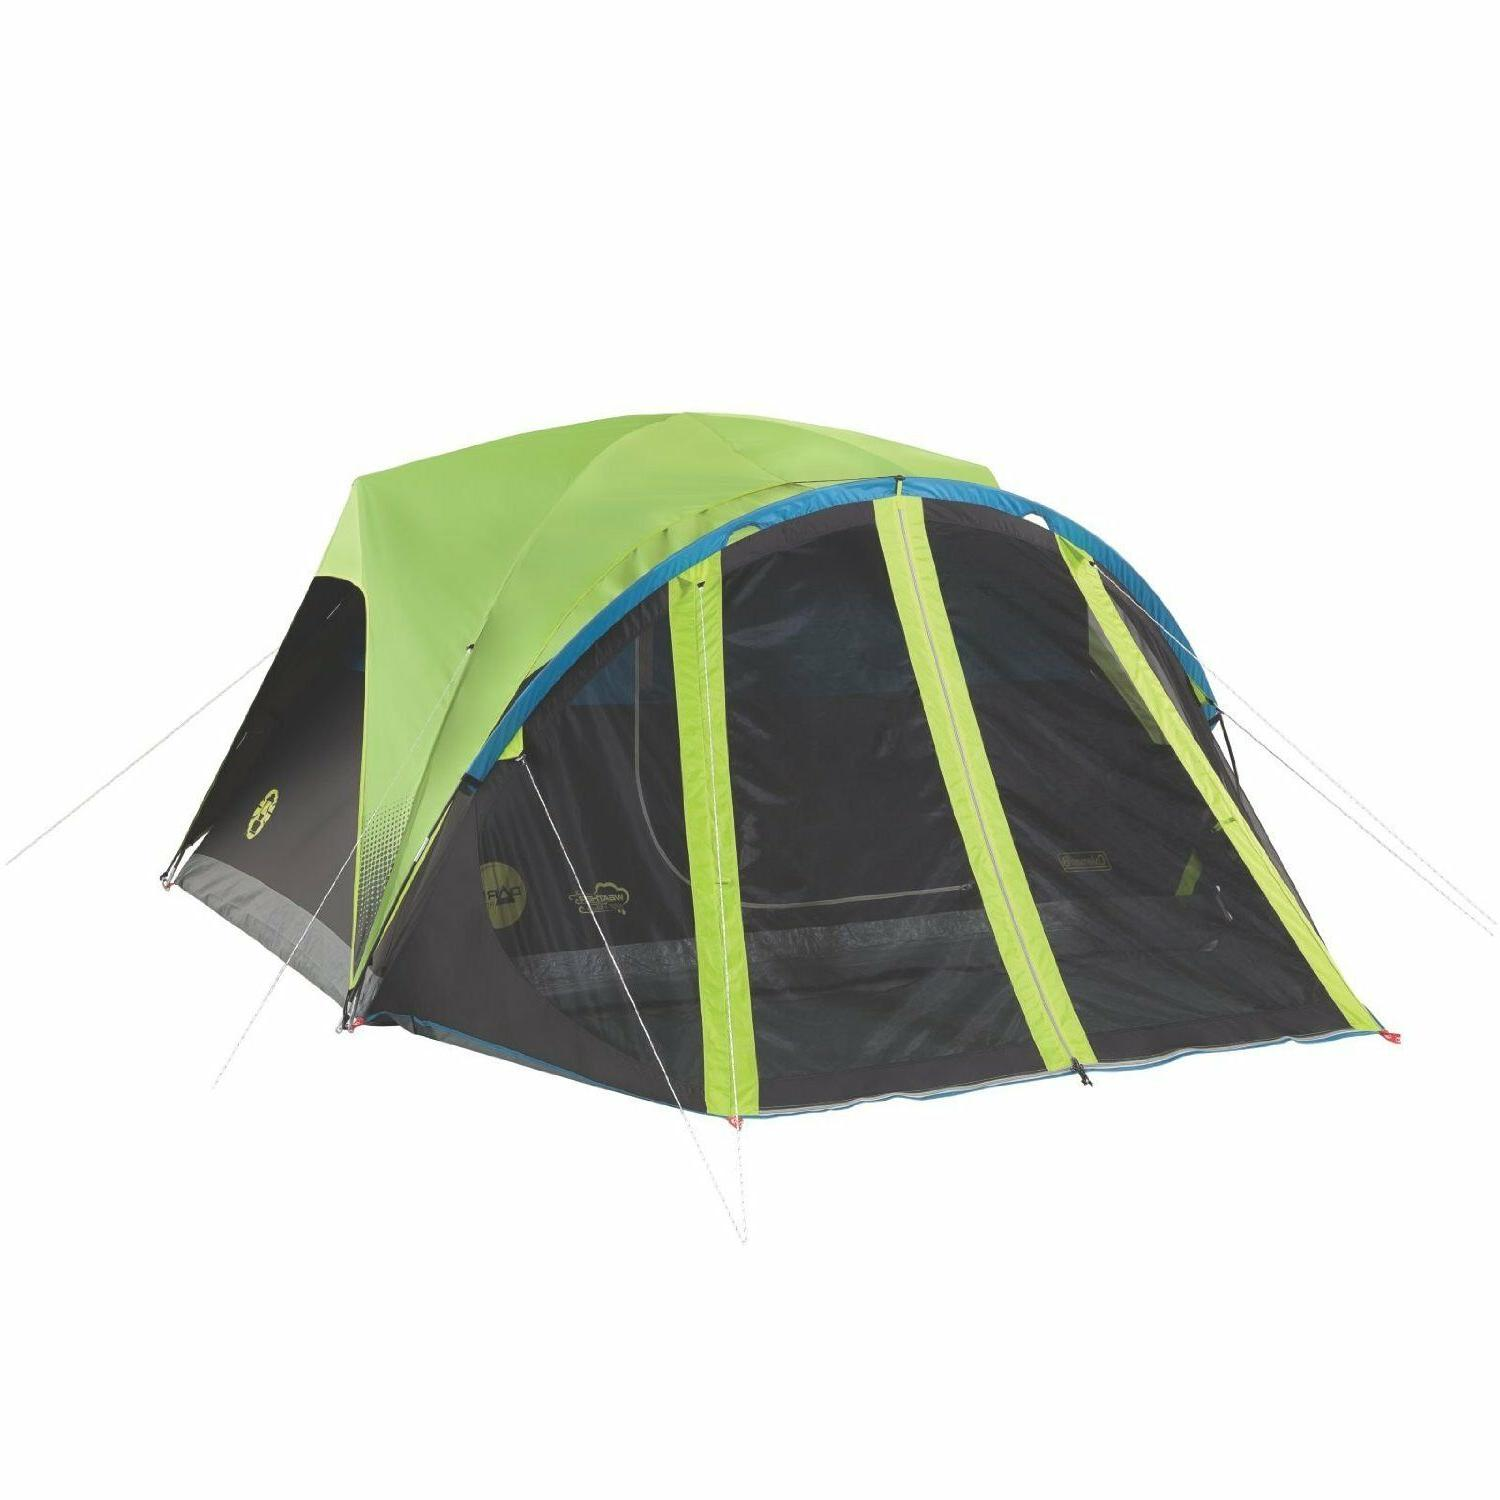 carlsbad 4 person dome dark room tent